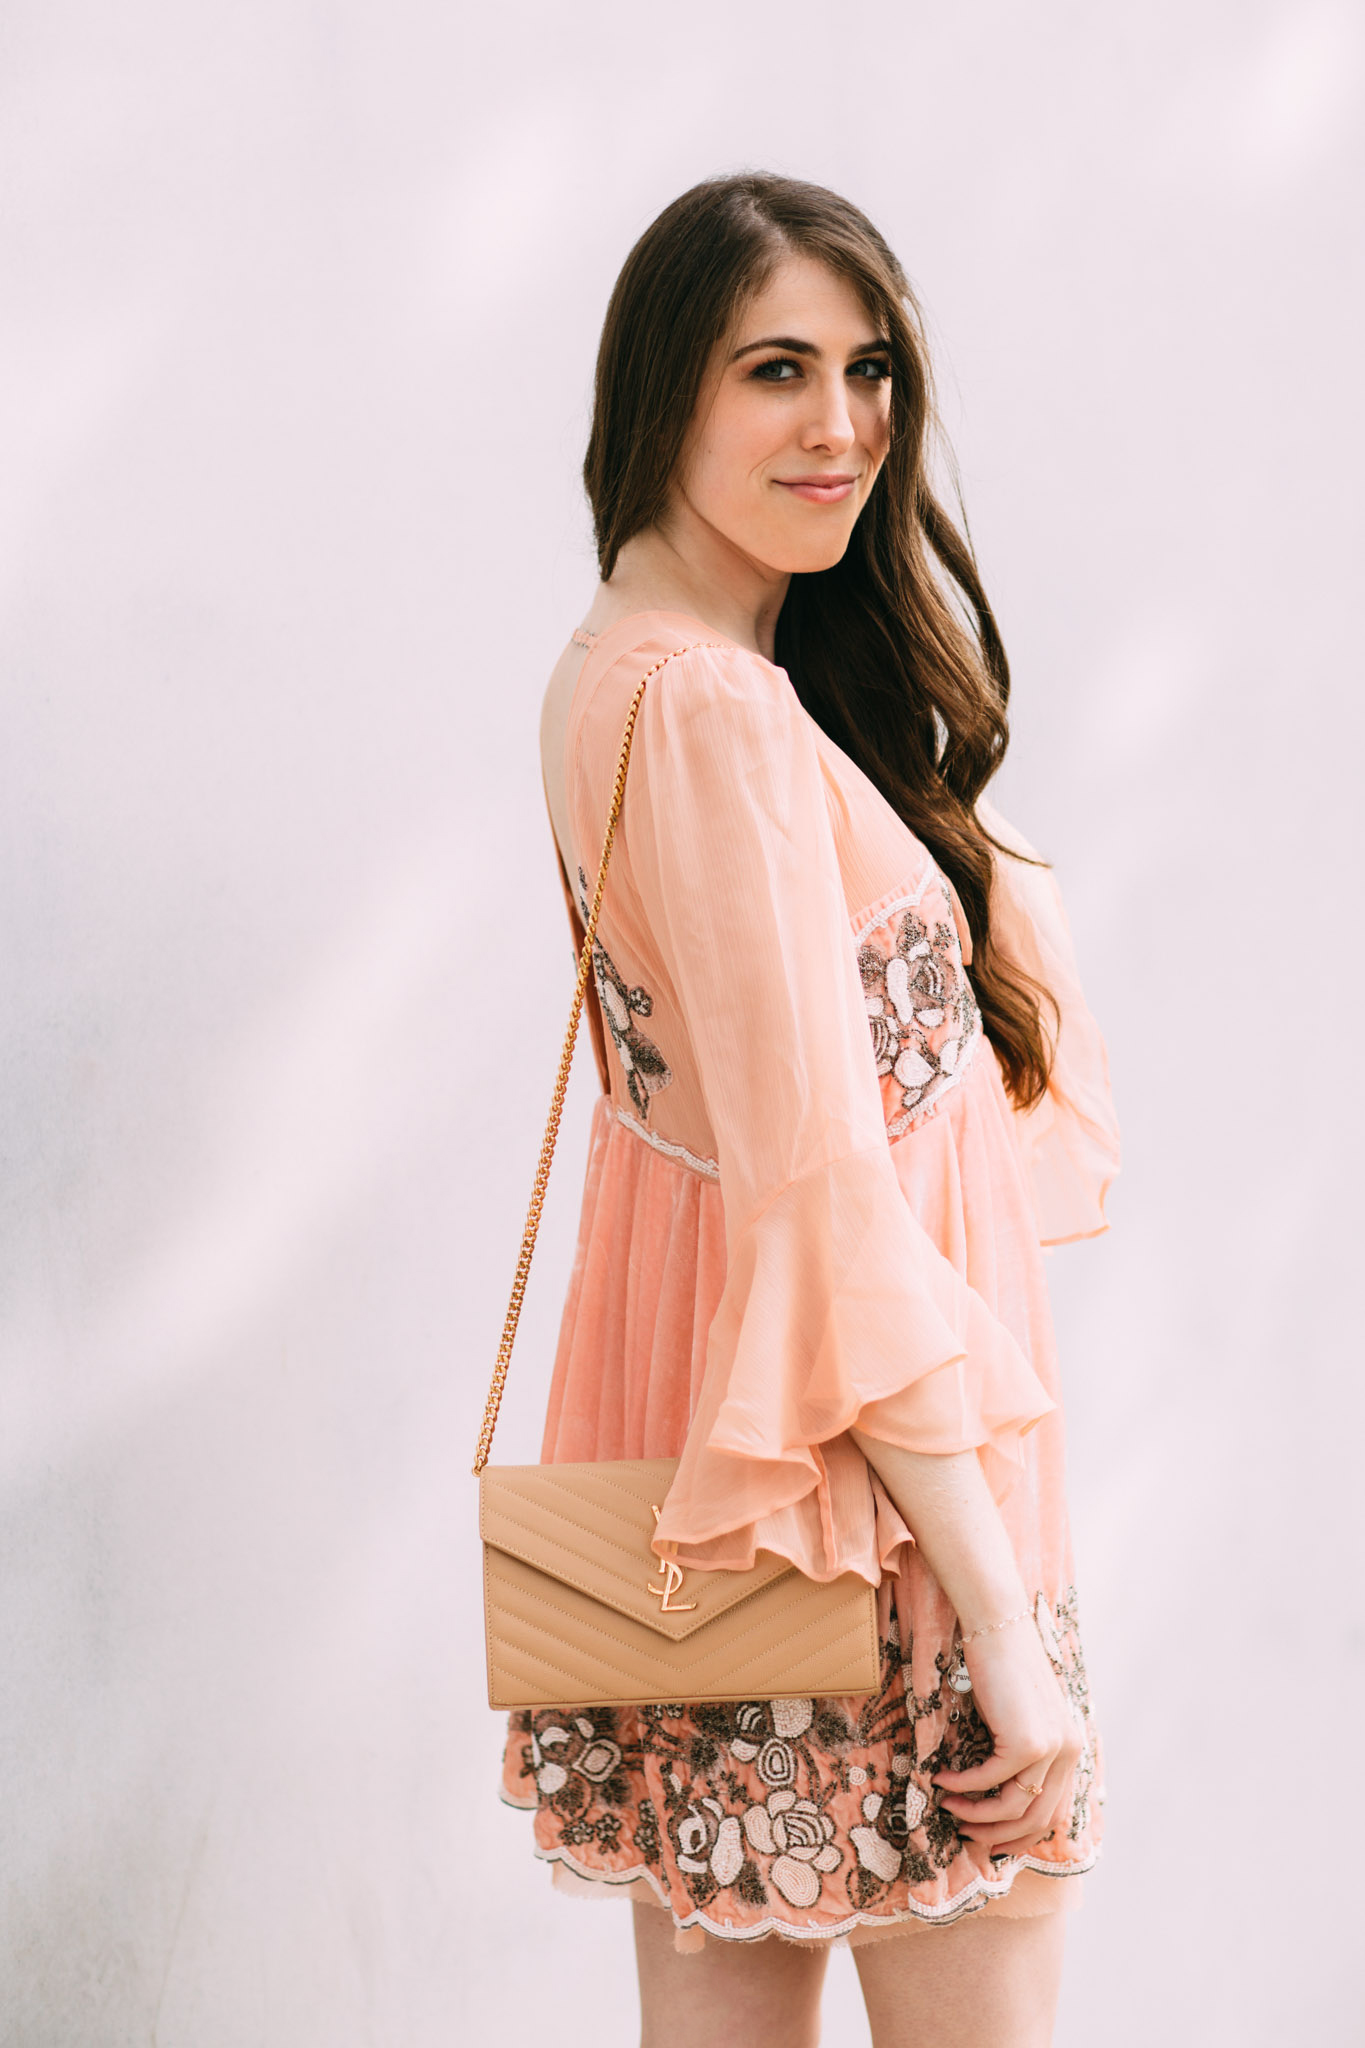 Los Angeles fashion blogger Brooke du jour